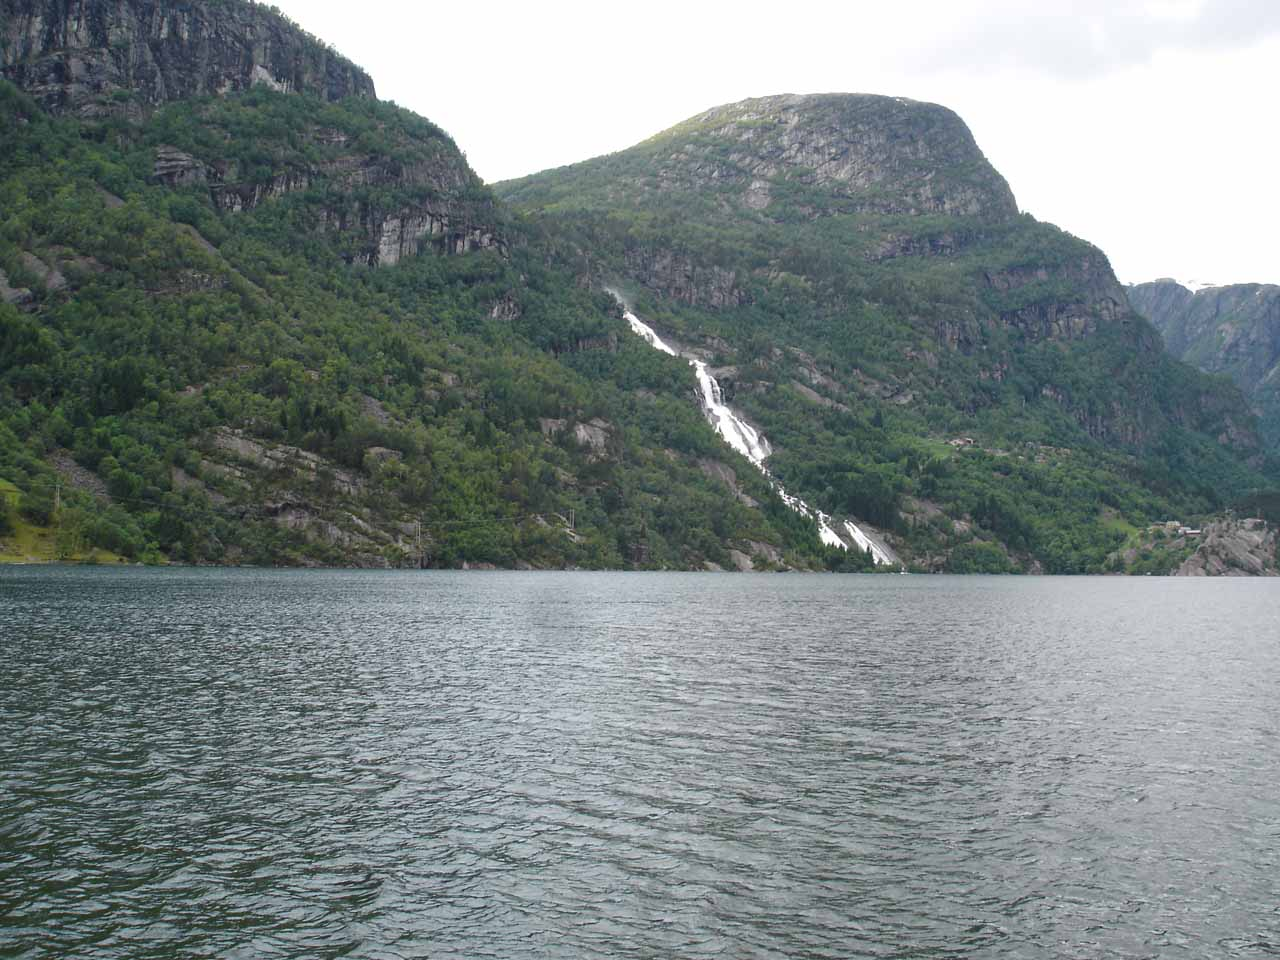 Strondsfossen started to come into view as we drove around the eastern shore of Sandvinvatnet